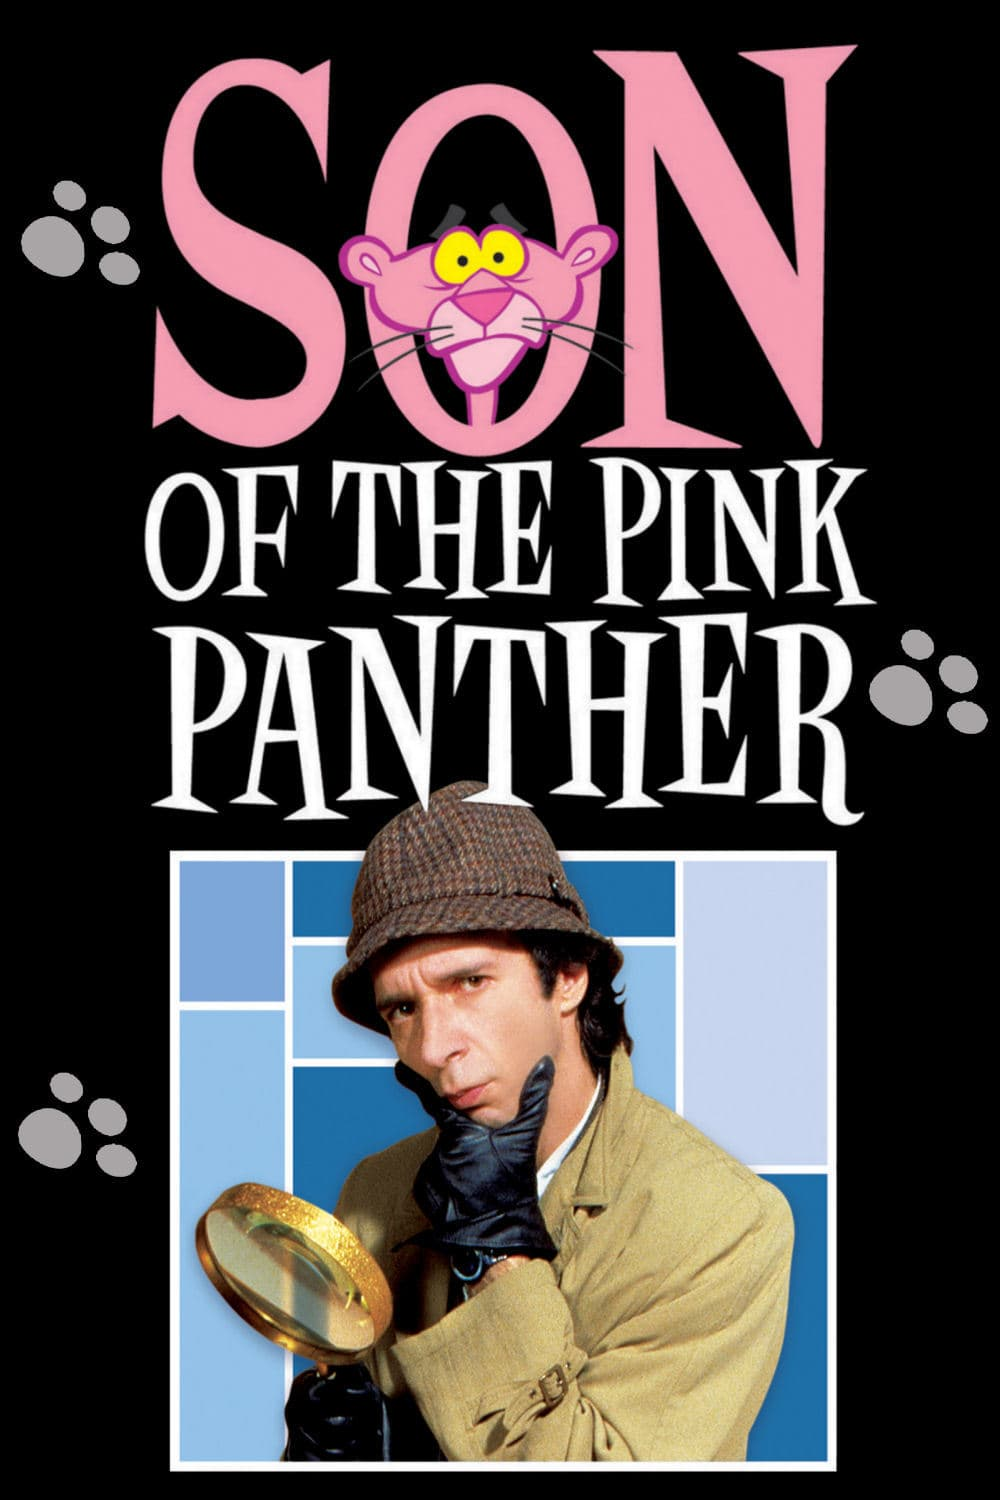 Son of the Pink Panther kapak